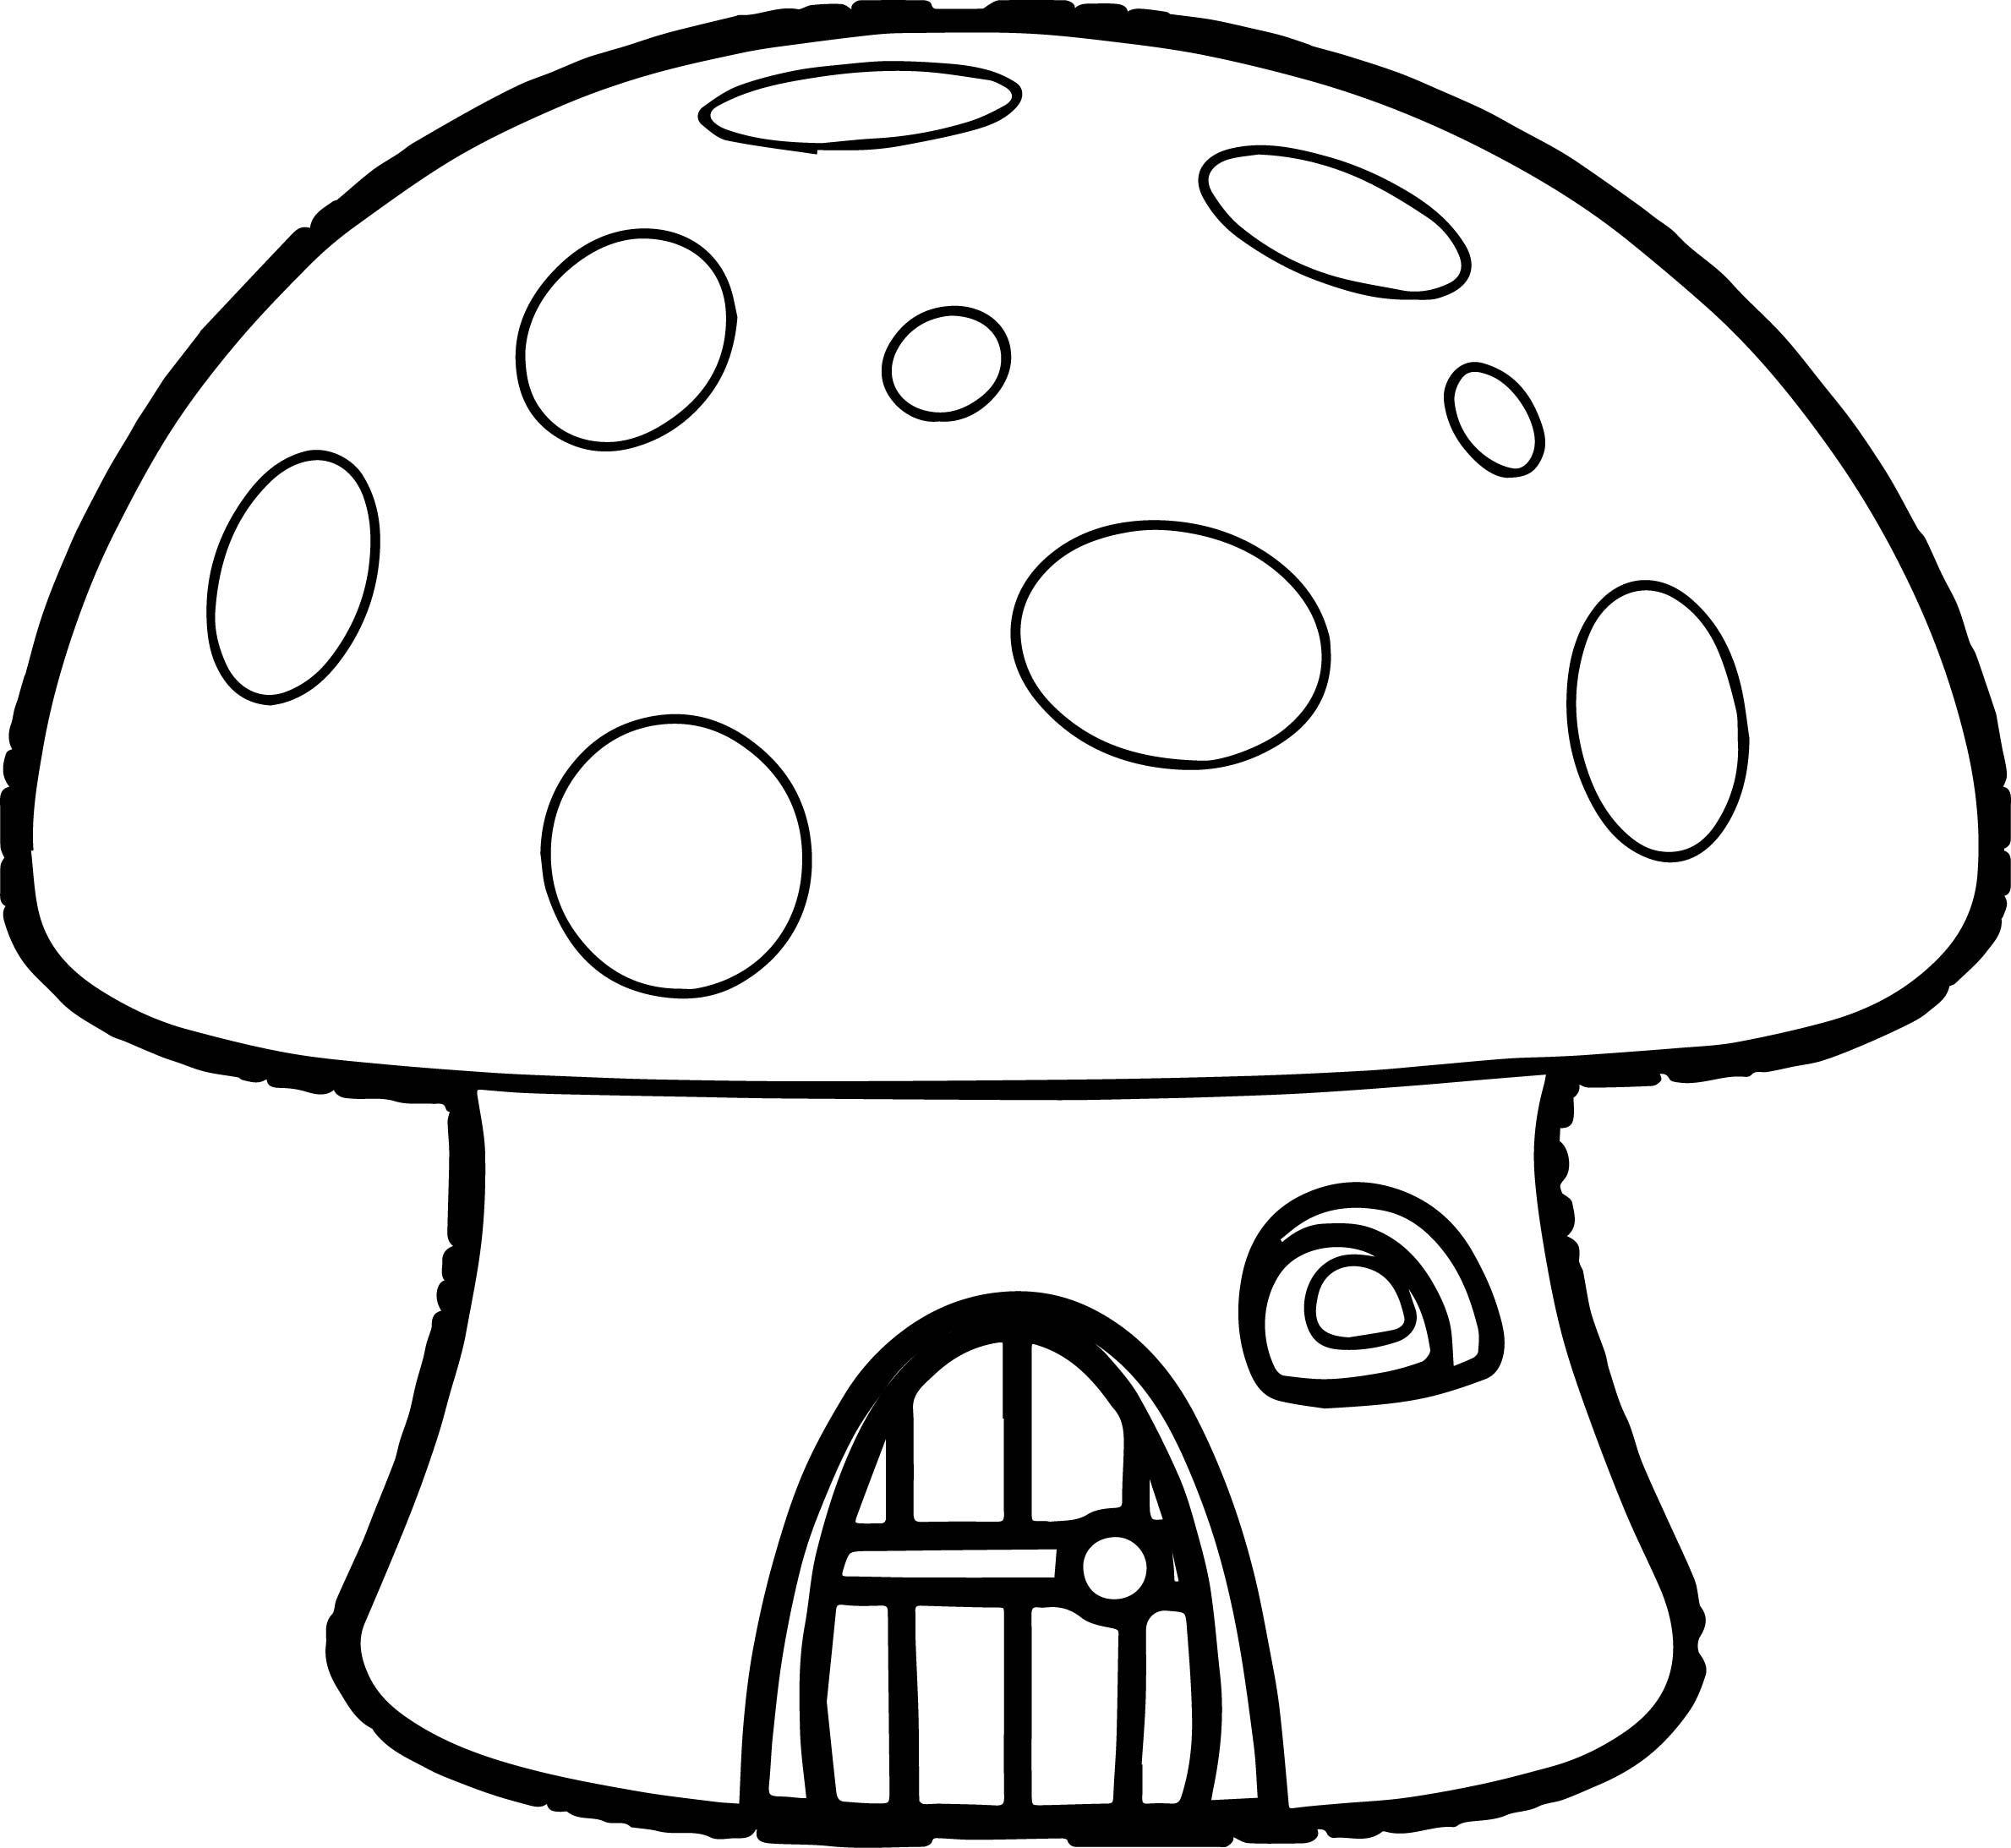 Orange Mushroom House Smurf Coloring Page